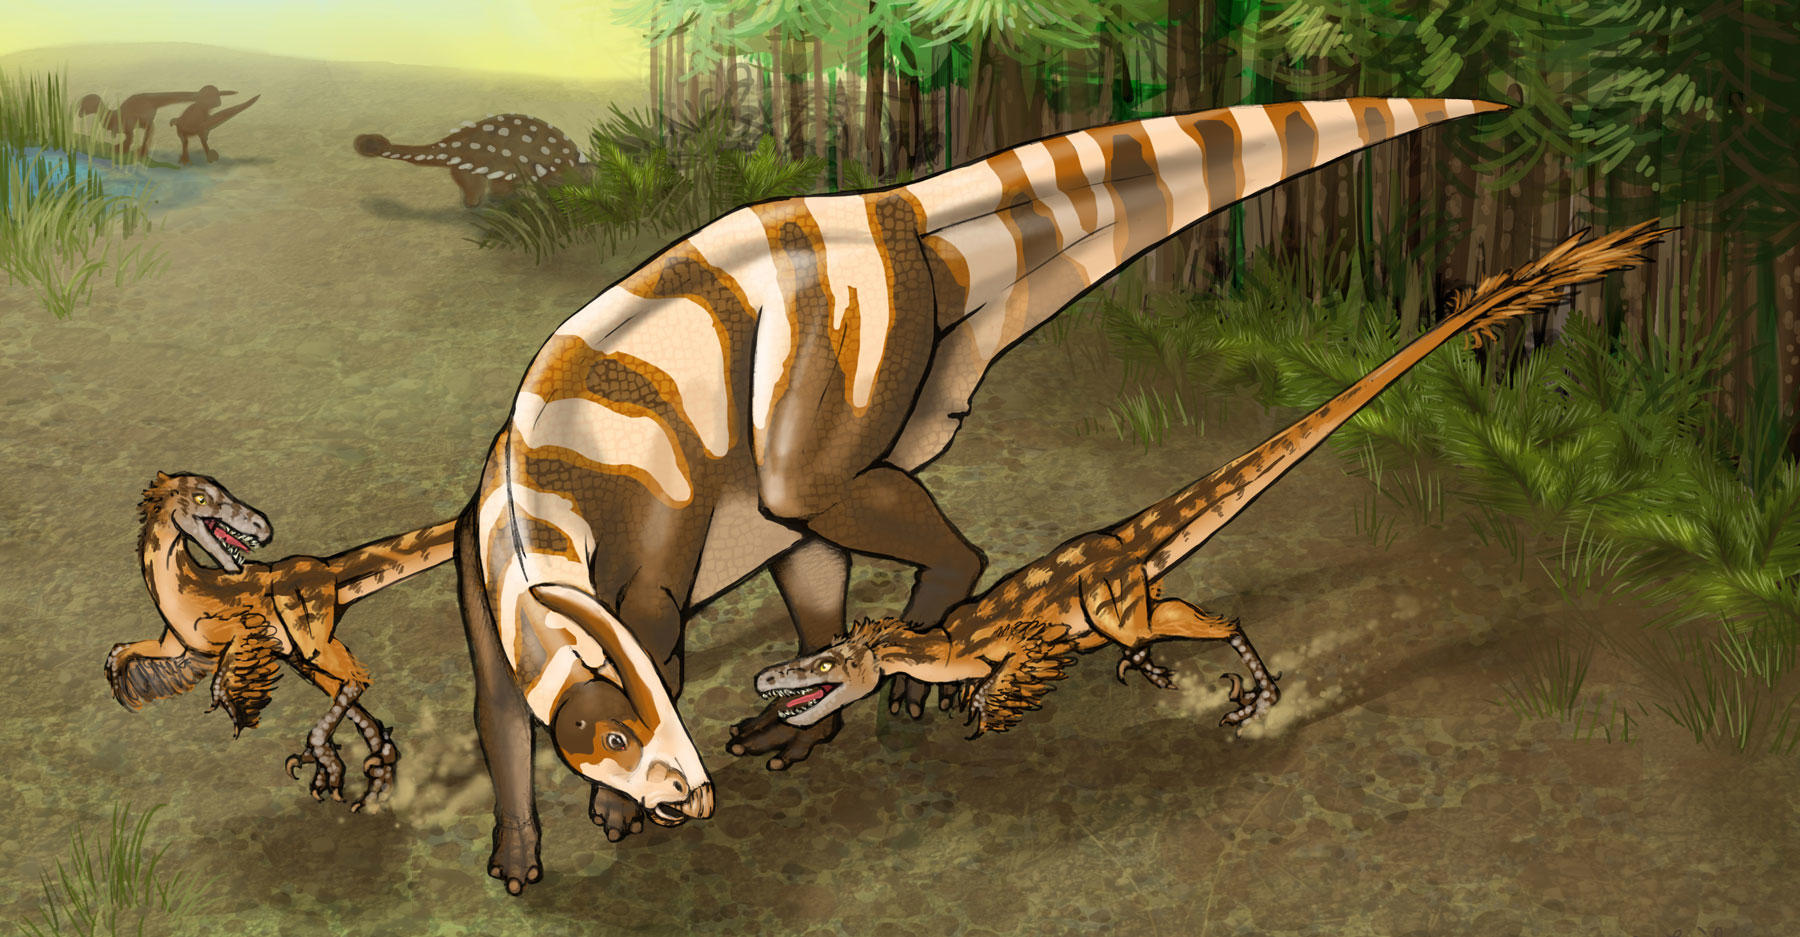 Saurornitholestes sullivani illustration